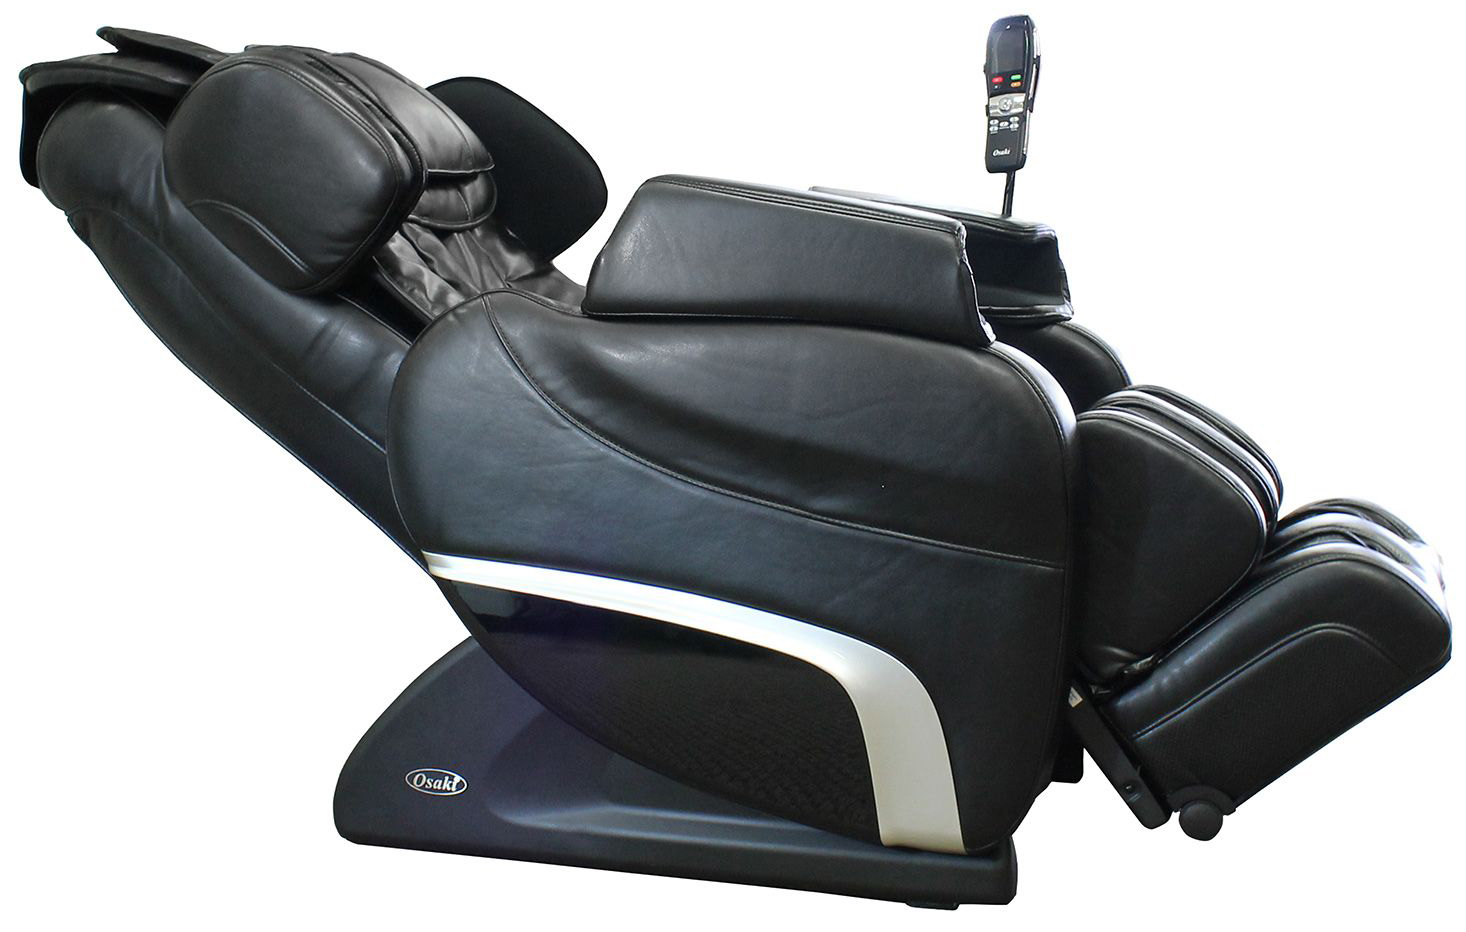 Awesome Titan TI 7700R Massage Chair Recliner Features